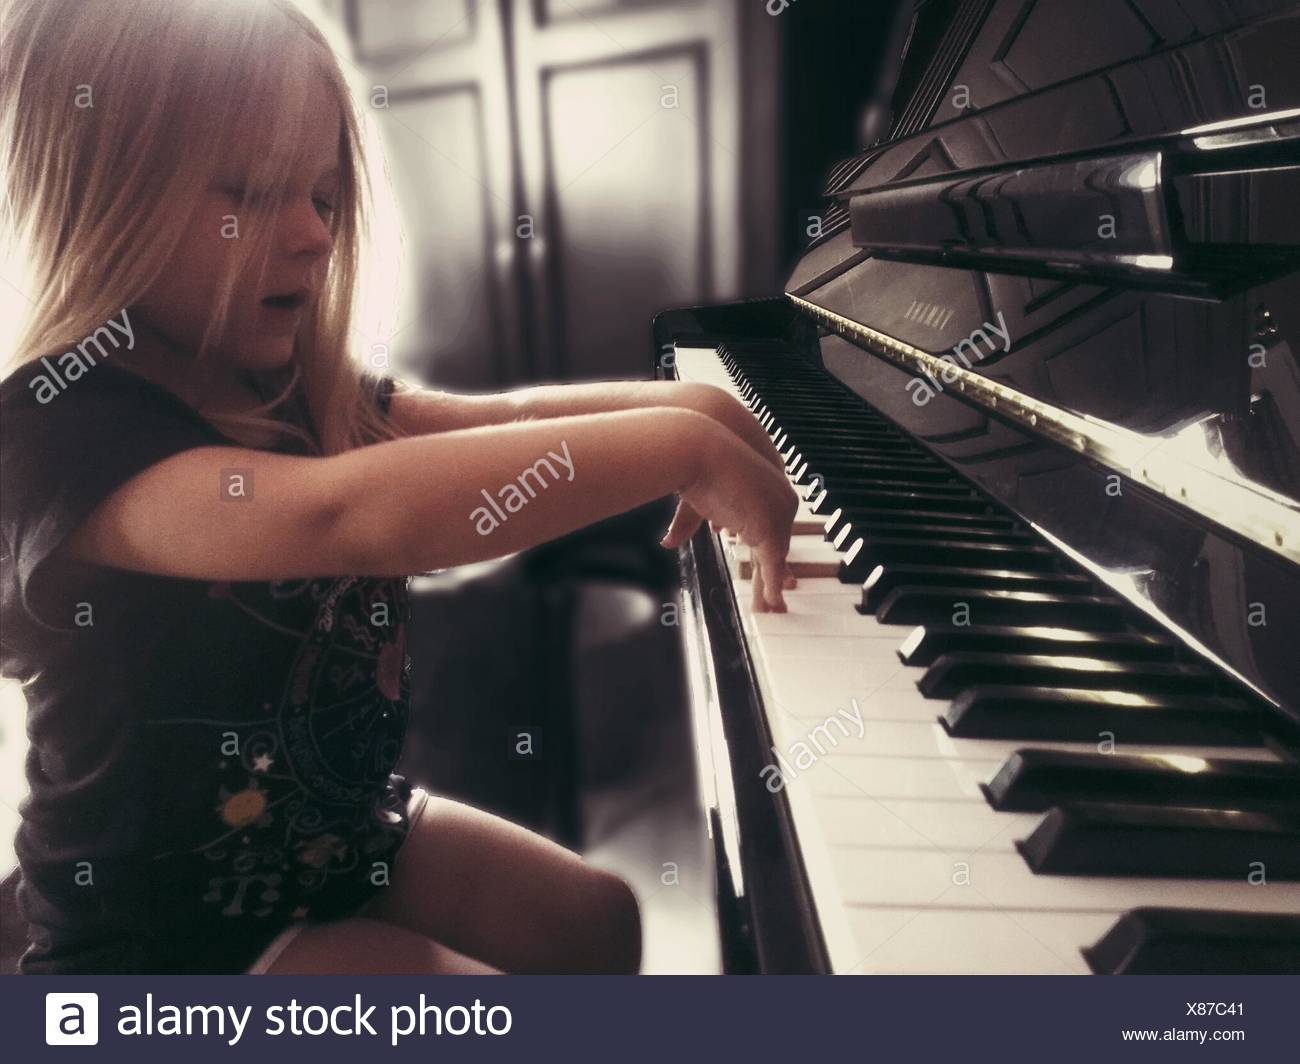 137796c7ad3 Girl Playing The Piano Stock Photos   Girl Playing The Piano Stock ...